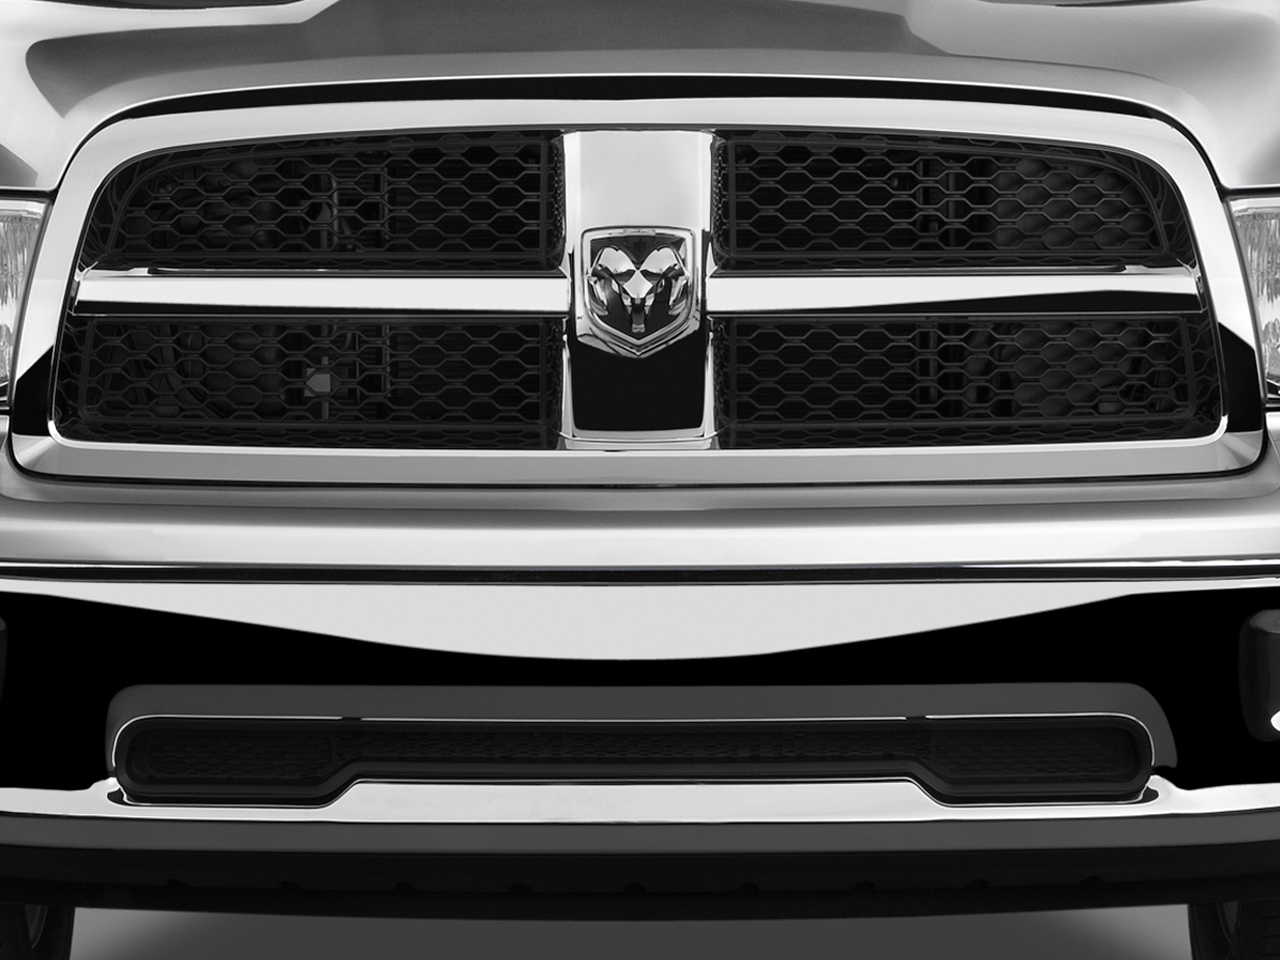 feature flick hennessey s supercharged ram pickup in action. Black Bedroom Furniture Sets. Home Design Ideas